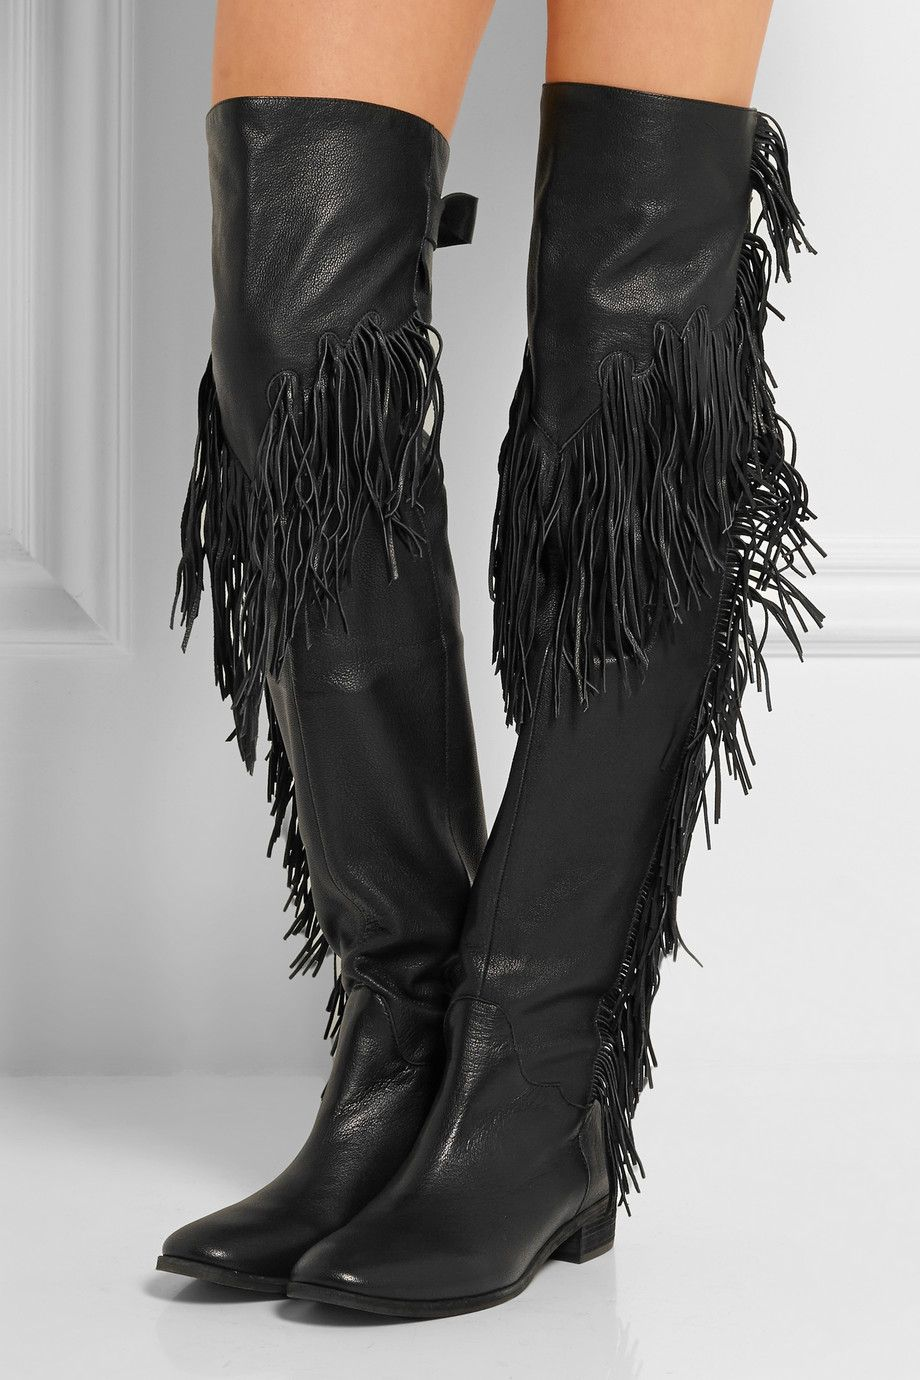 See by Chloé fringed leather over-the-knee boots | My Style ...